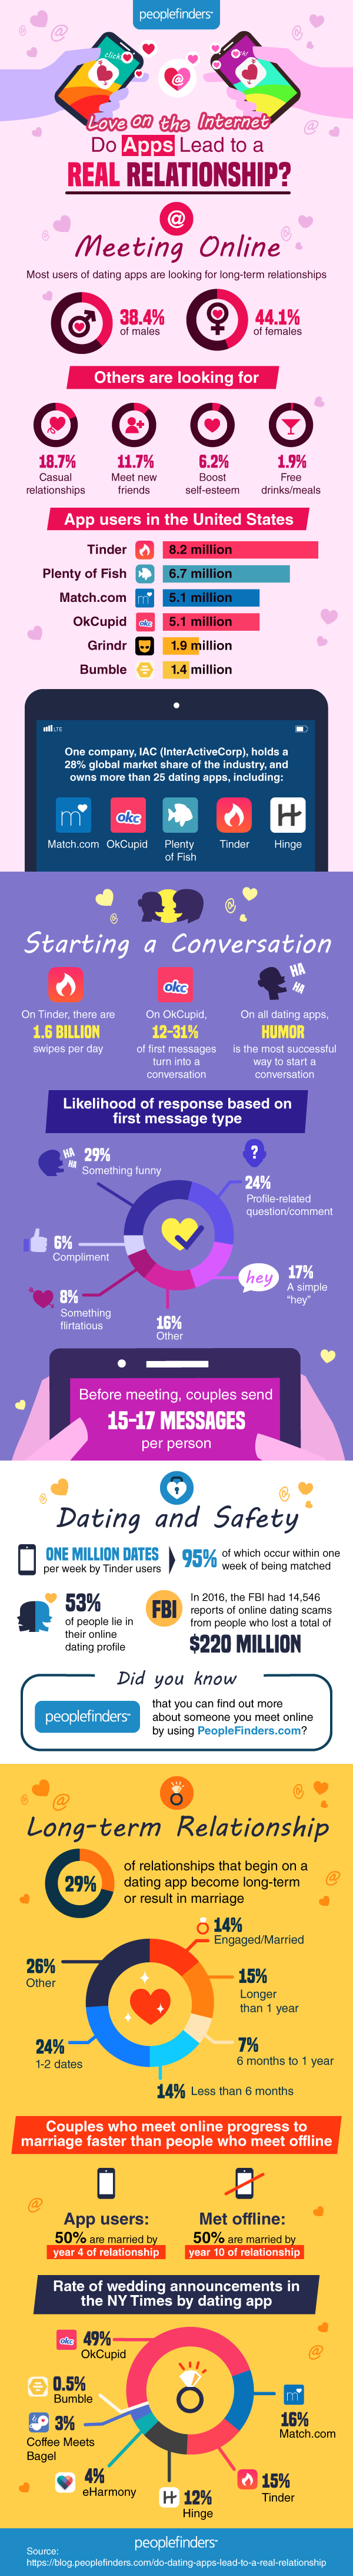 can dating apps and websites lead to a real relationship